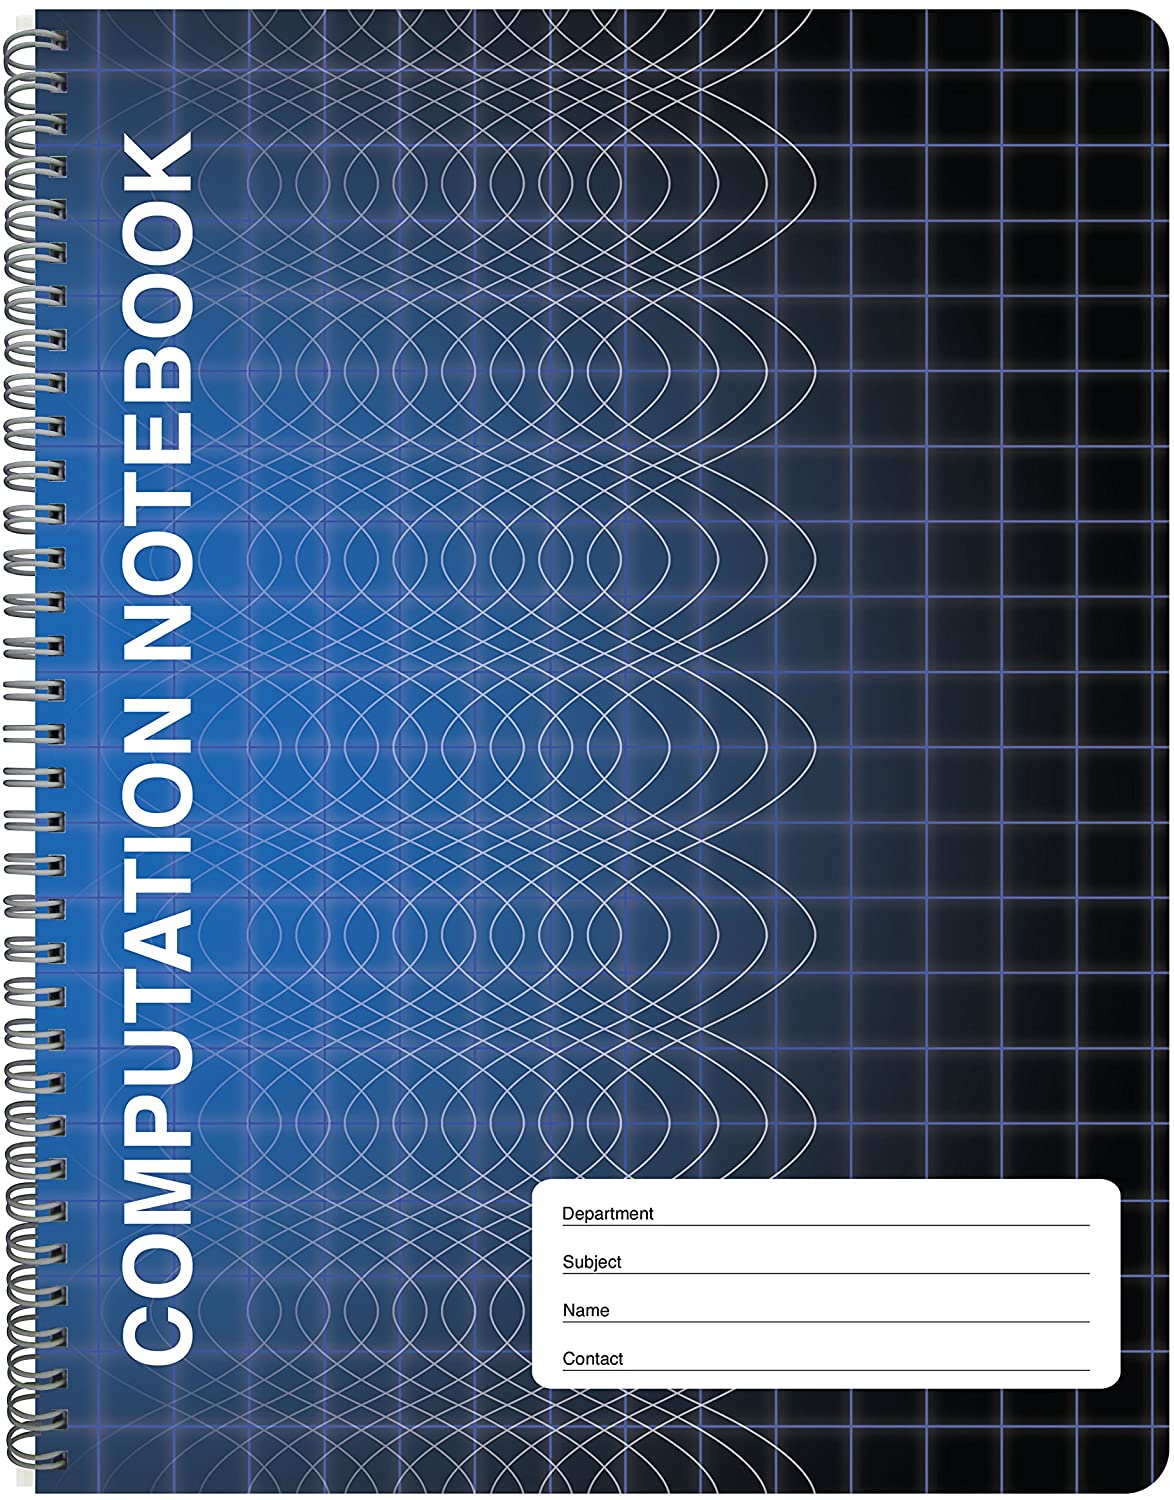 BookFactory Computation Notebook/Engineering Notebook - 100 Pages (9 1/4